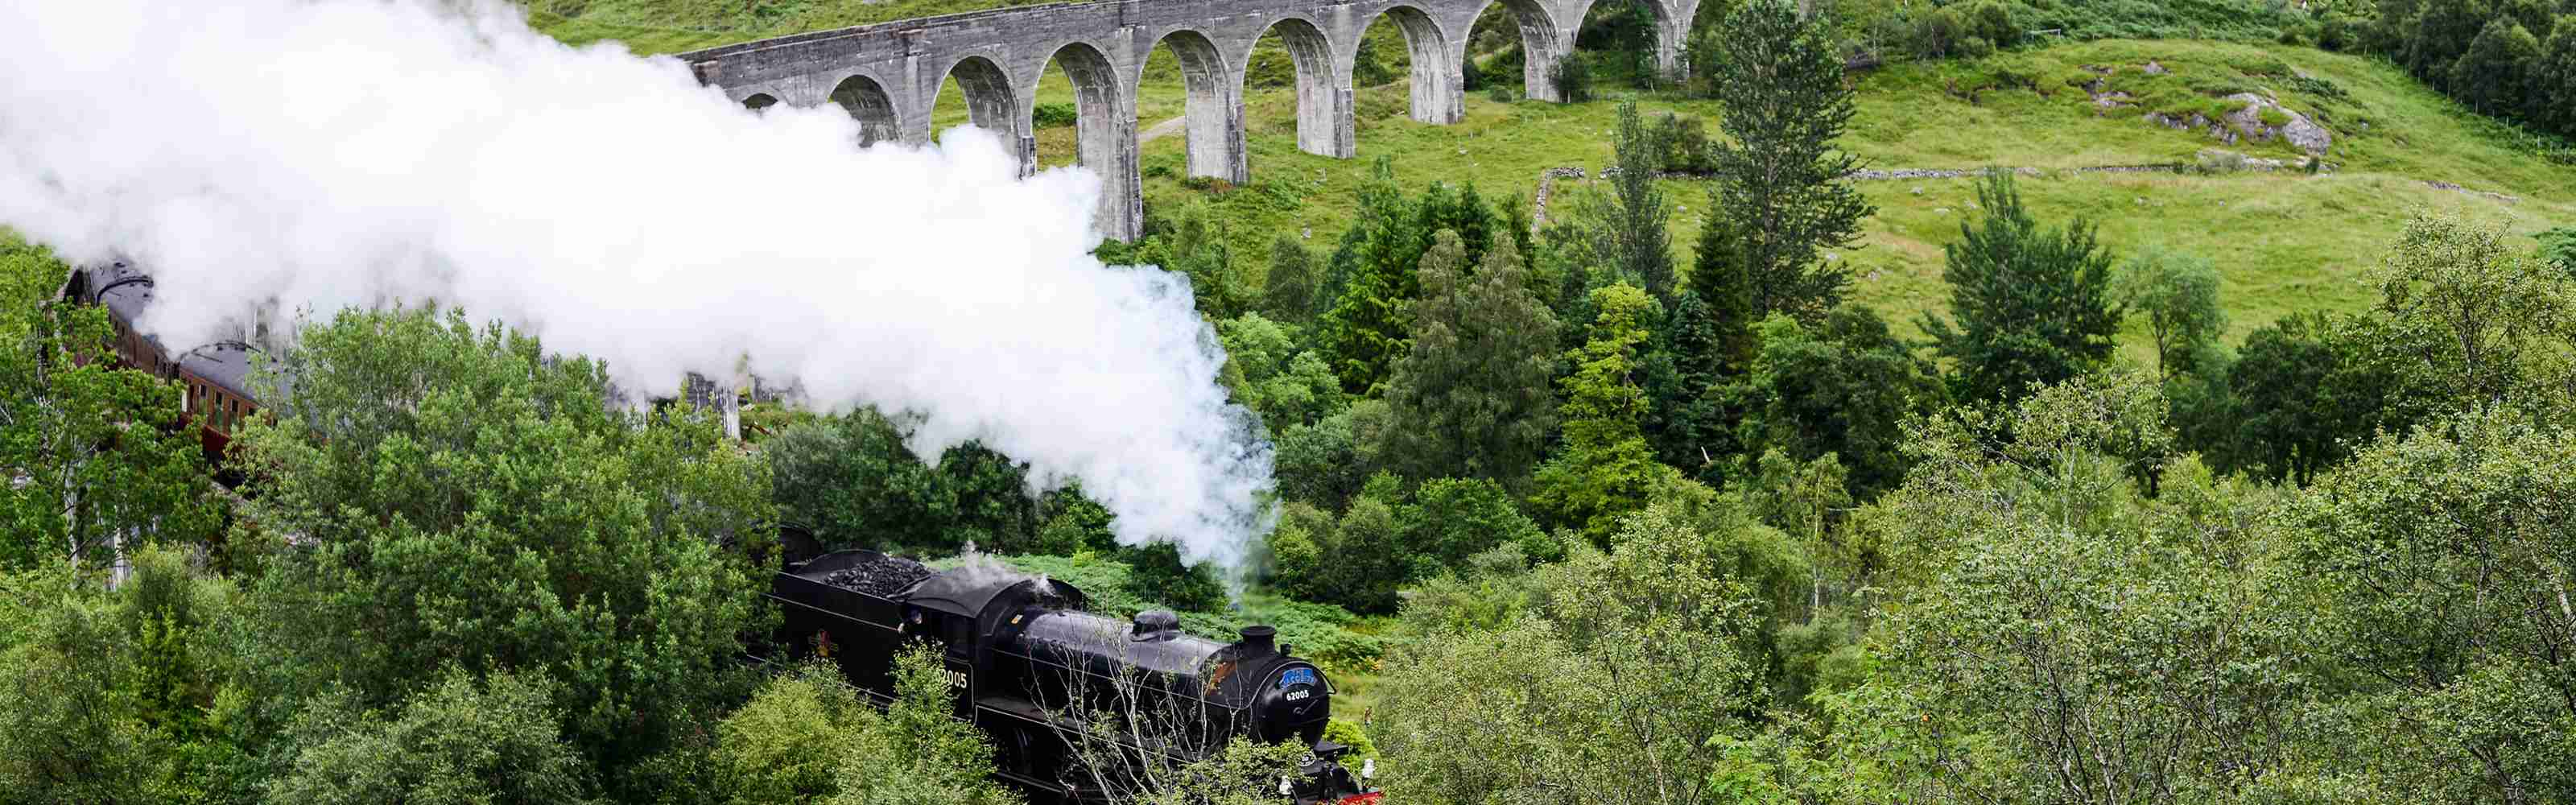 Harry-Potter-Train-Glenfinnan-Scotland_smoke